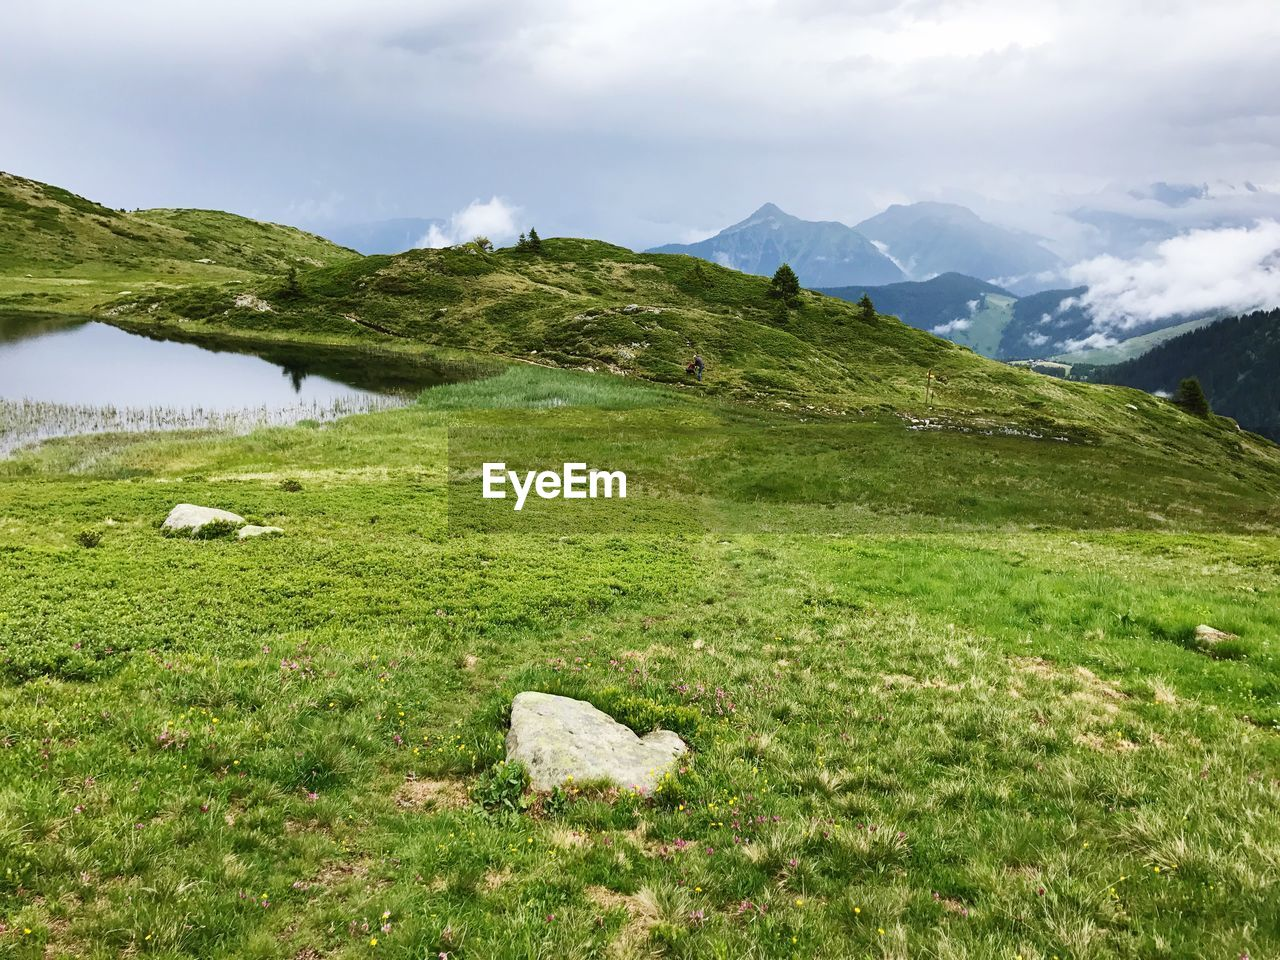 grass, mountain, nature, green color, scenics, tranquil scene, tranquility, beauty in nature, day, green, no people, outdoors, sky, landscape, cloud - sky, mountain range, water